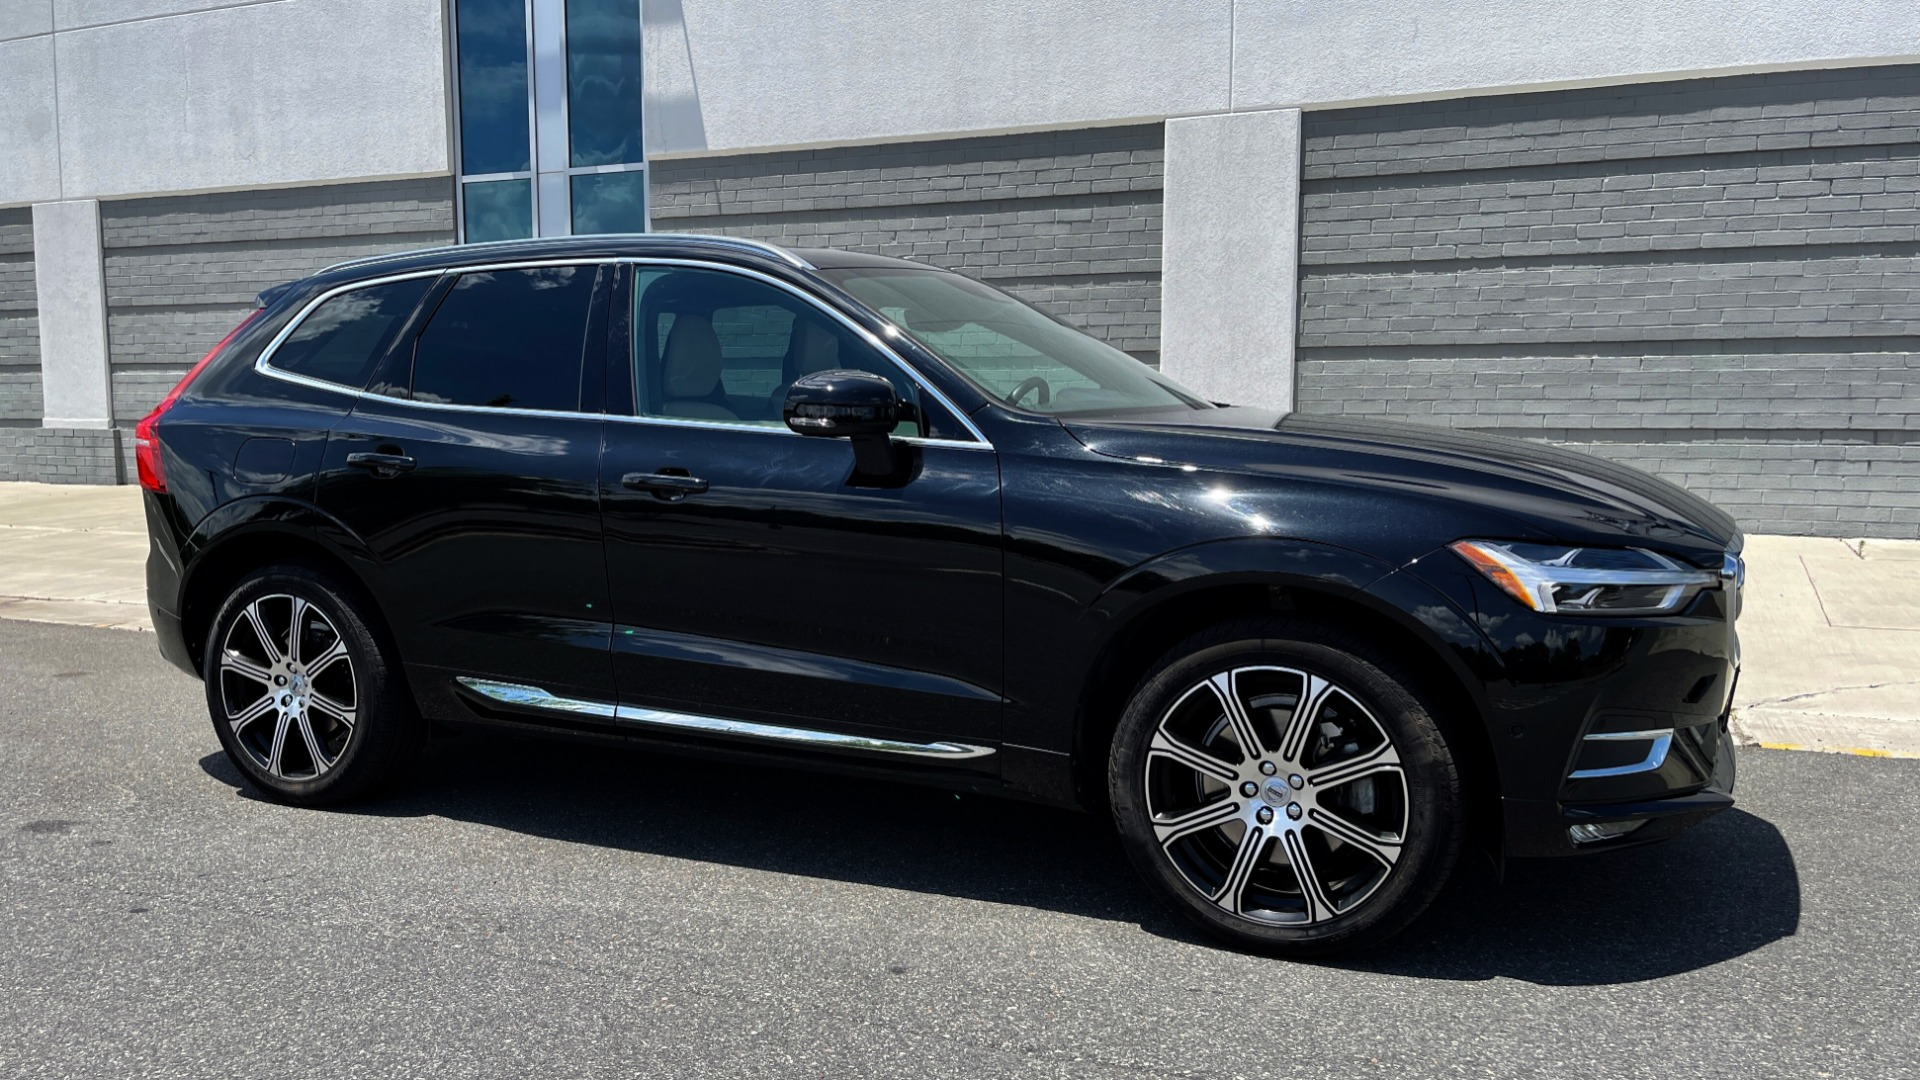 Used 2018 Volvo XC60 INSCRIPTION 2.0L TURBO SUV / AWD / NAV / SUNROOF / REARVIEW for sale $38,795 at Formula Imports in Charlotte NC 28227 6